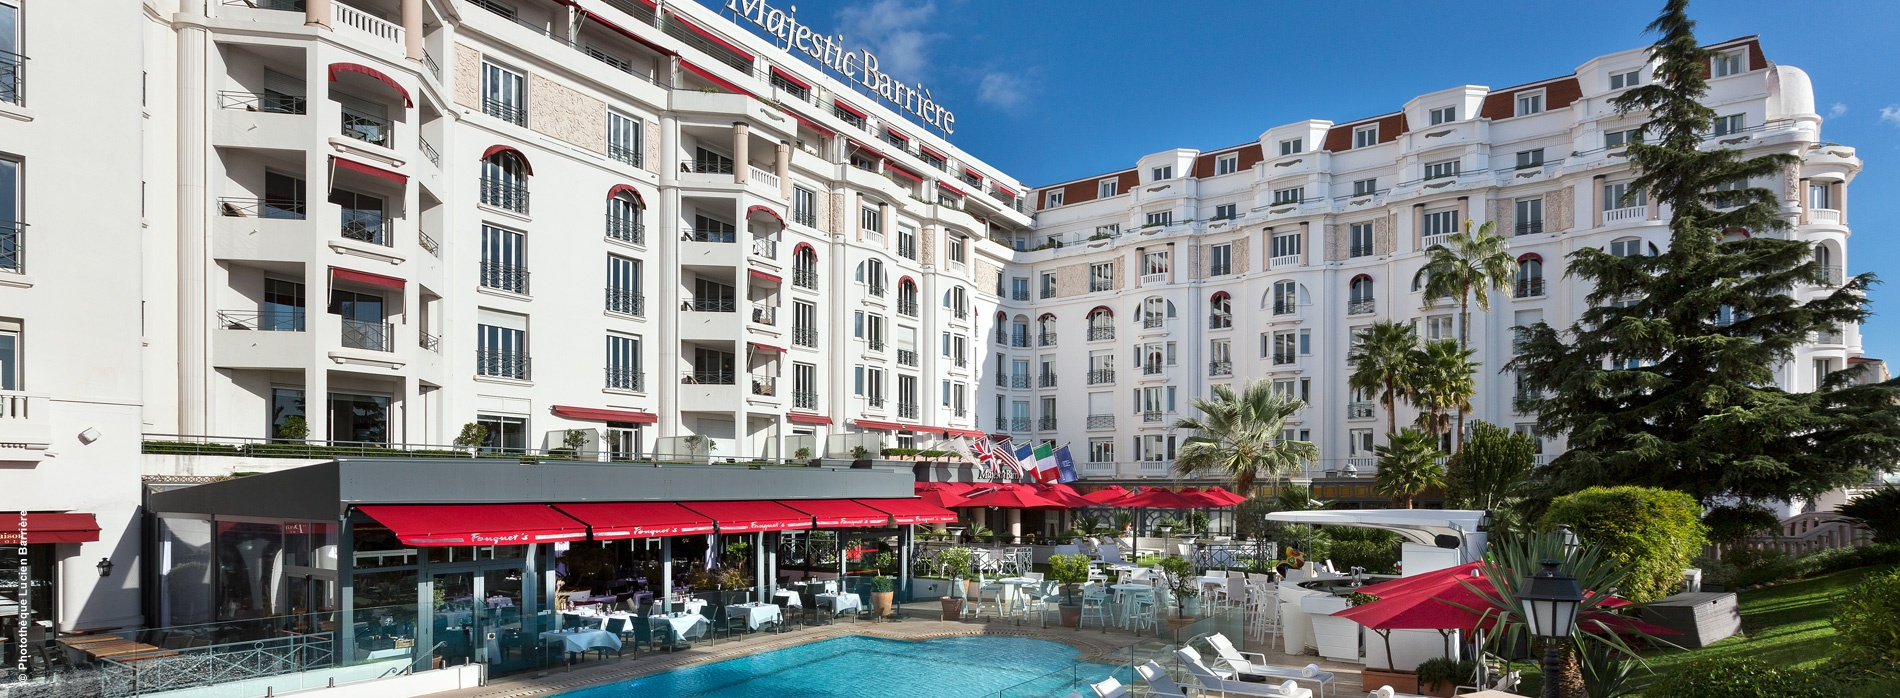 Hotel Barrière Le Majestic, Cannes